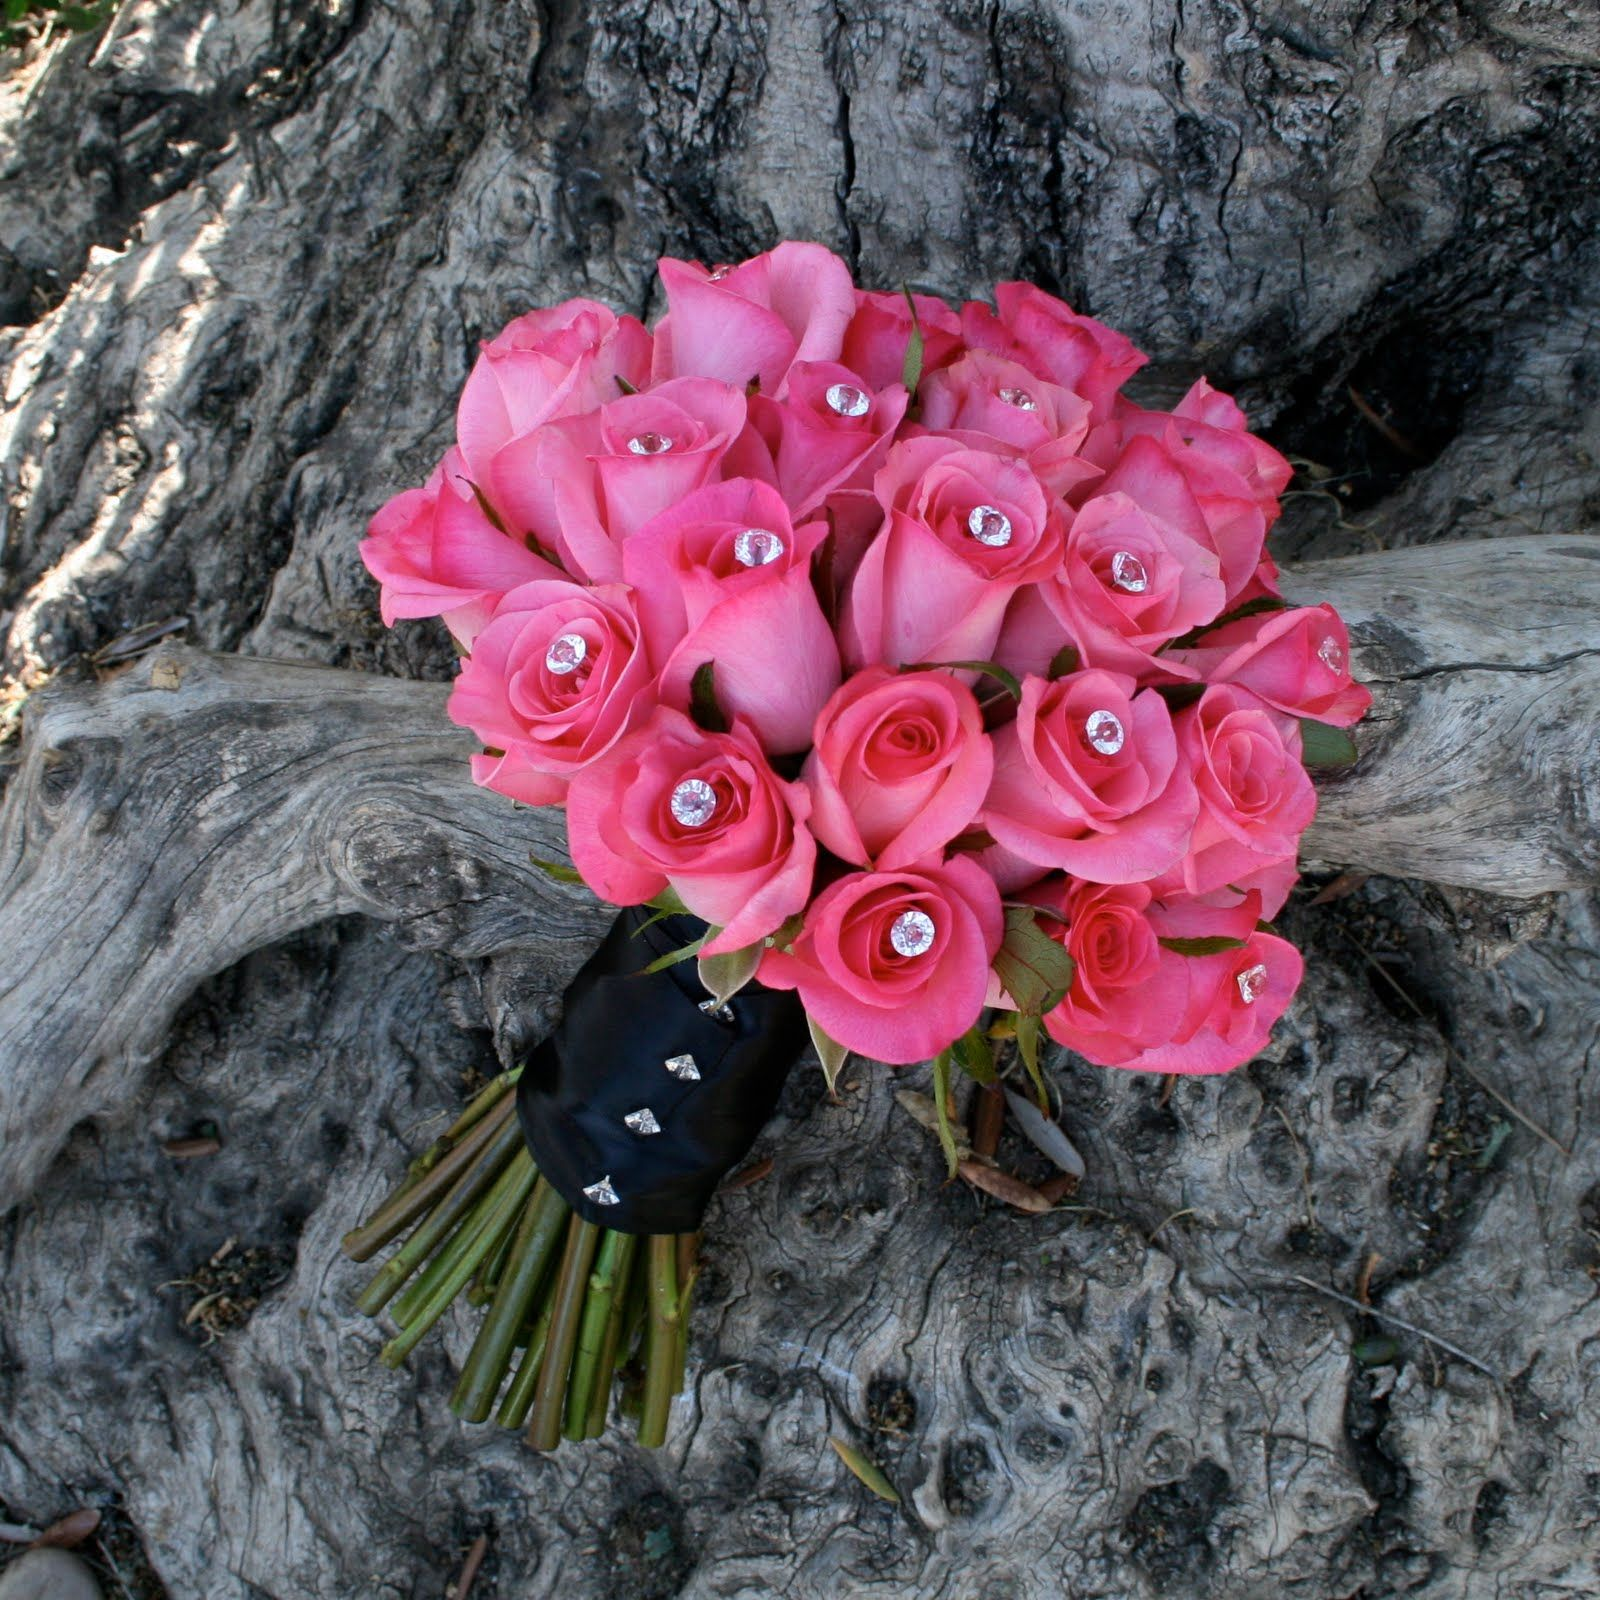 Blue and black wedding decor  hot pink and black wedding decorations  Google Search  wedding for